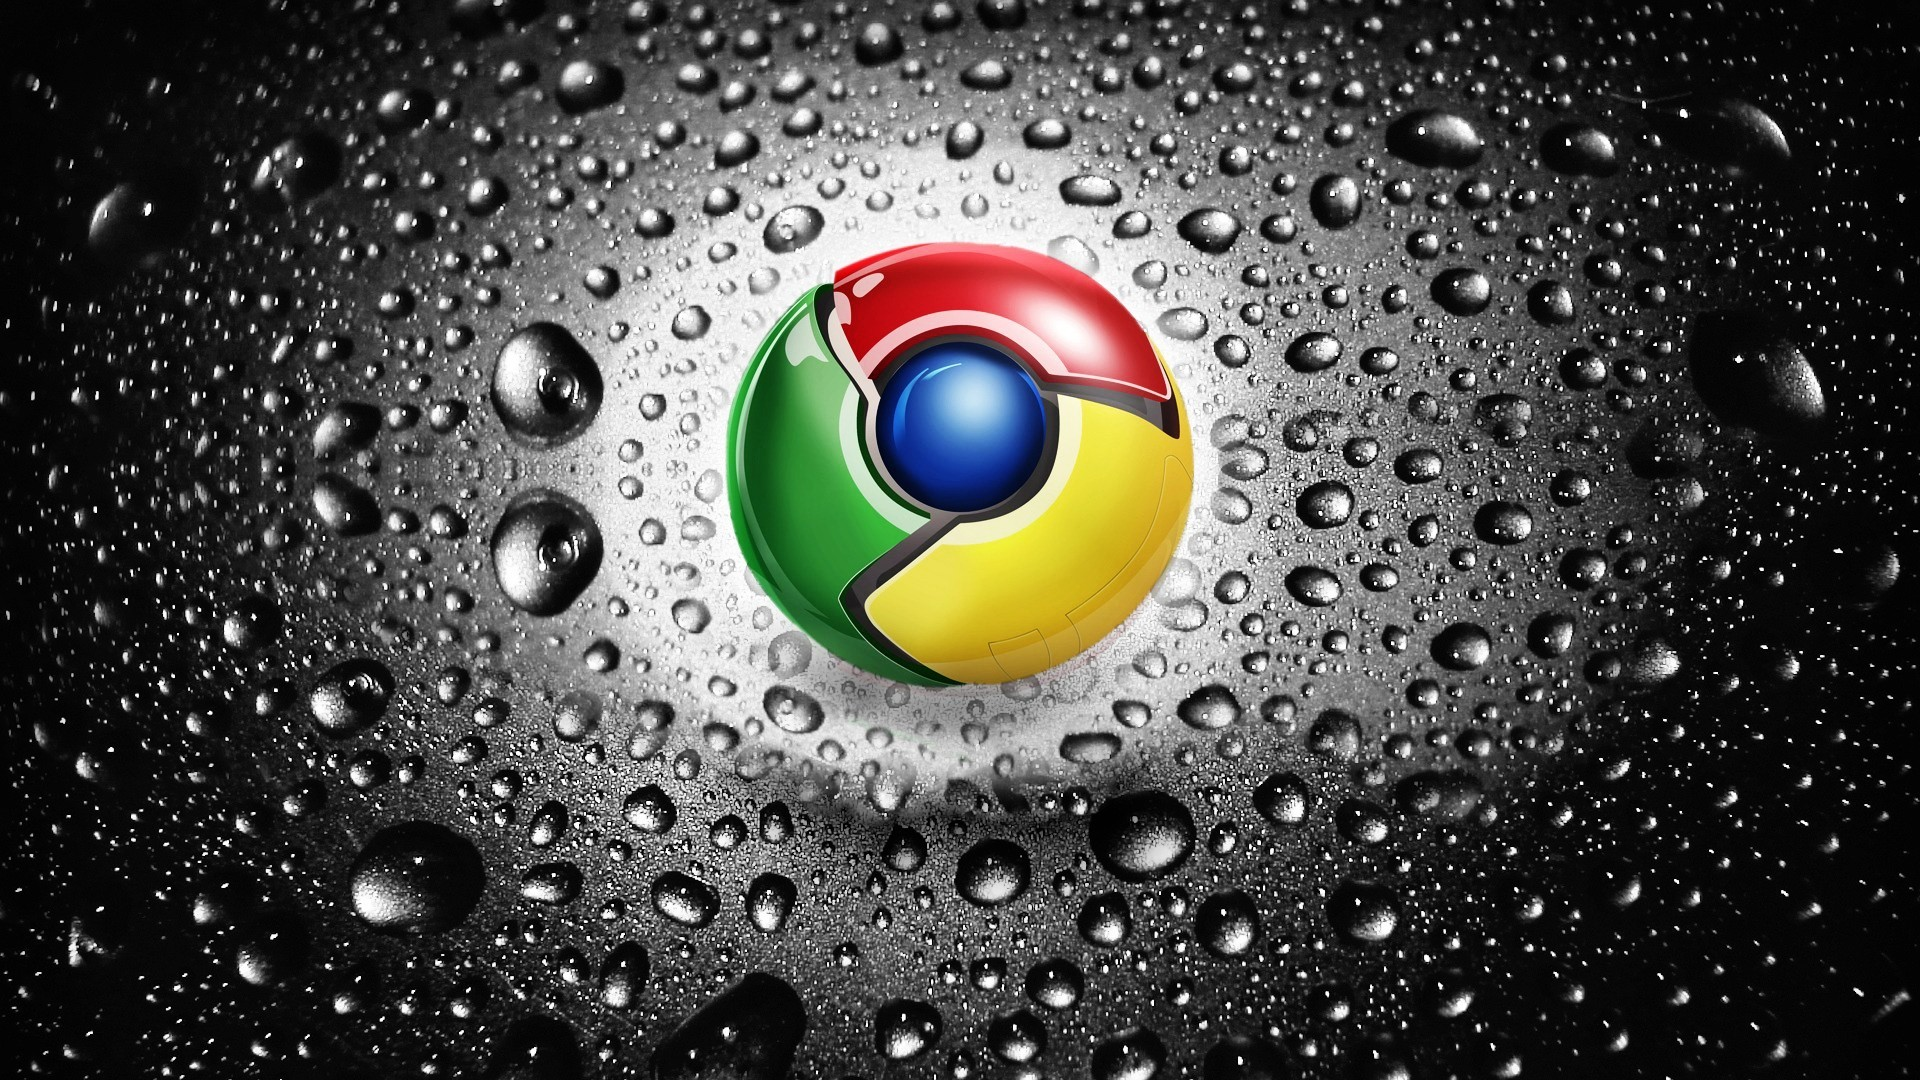 Wallpaper Chrome.